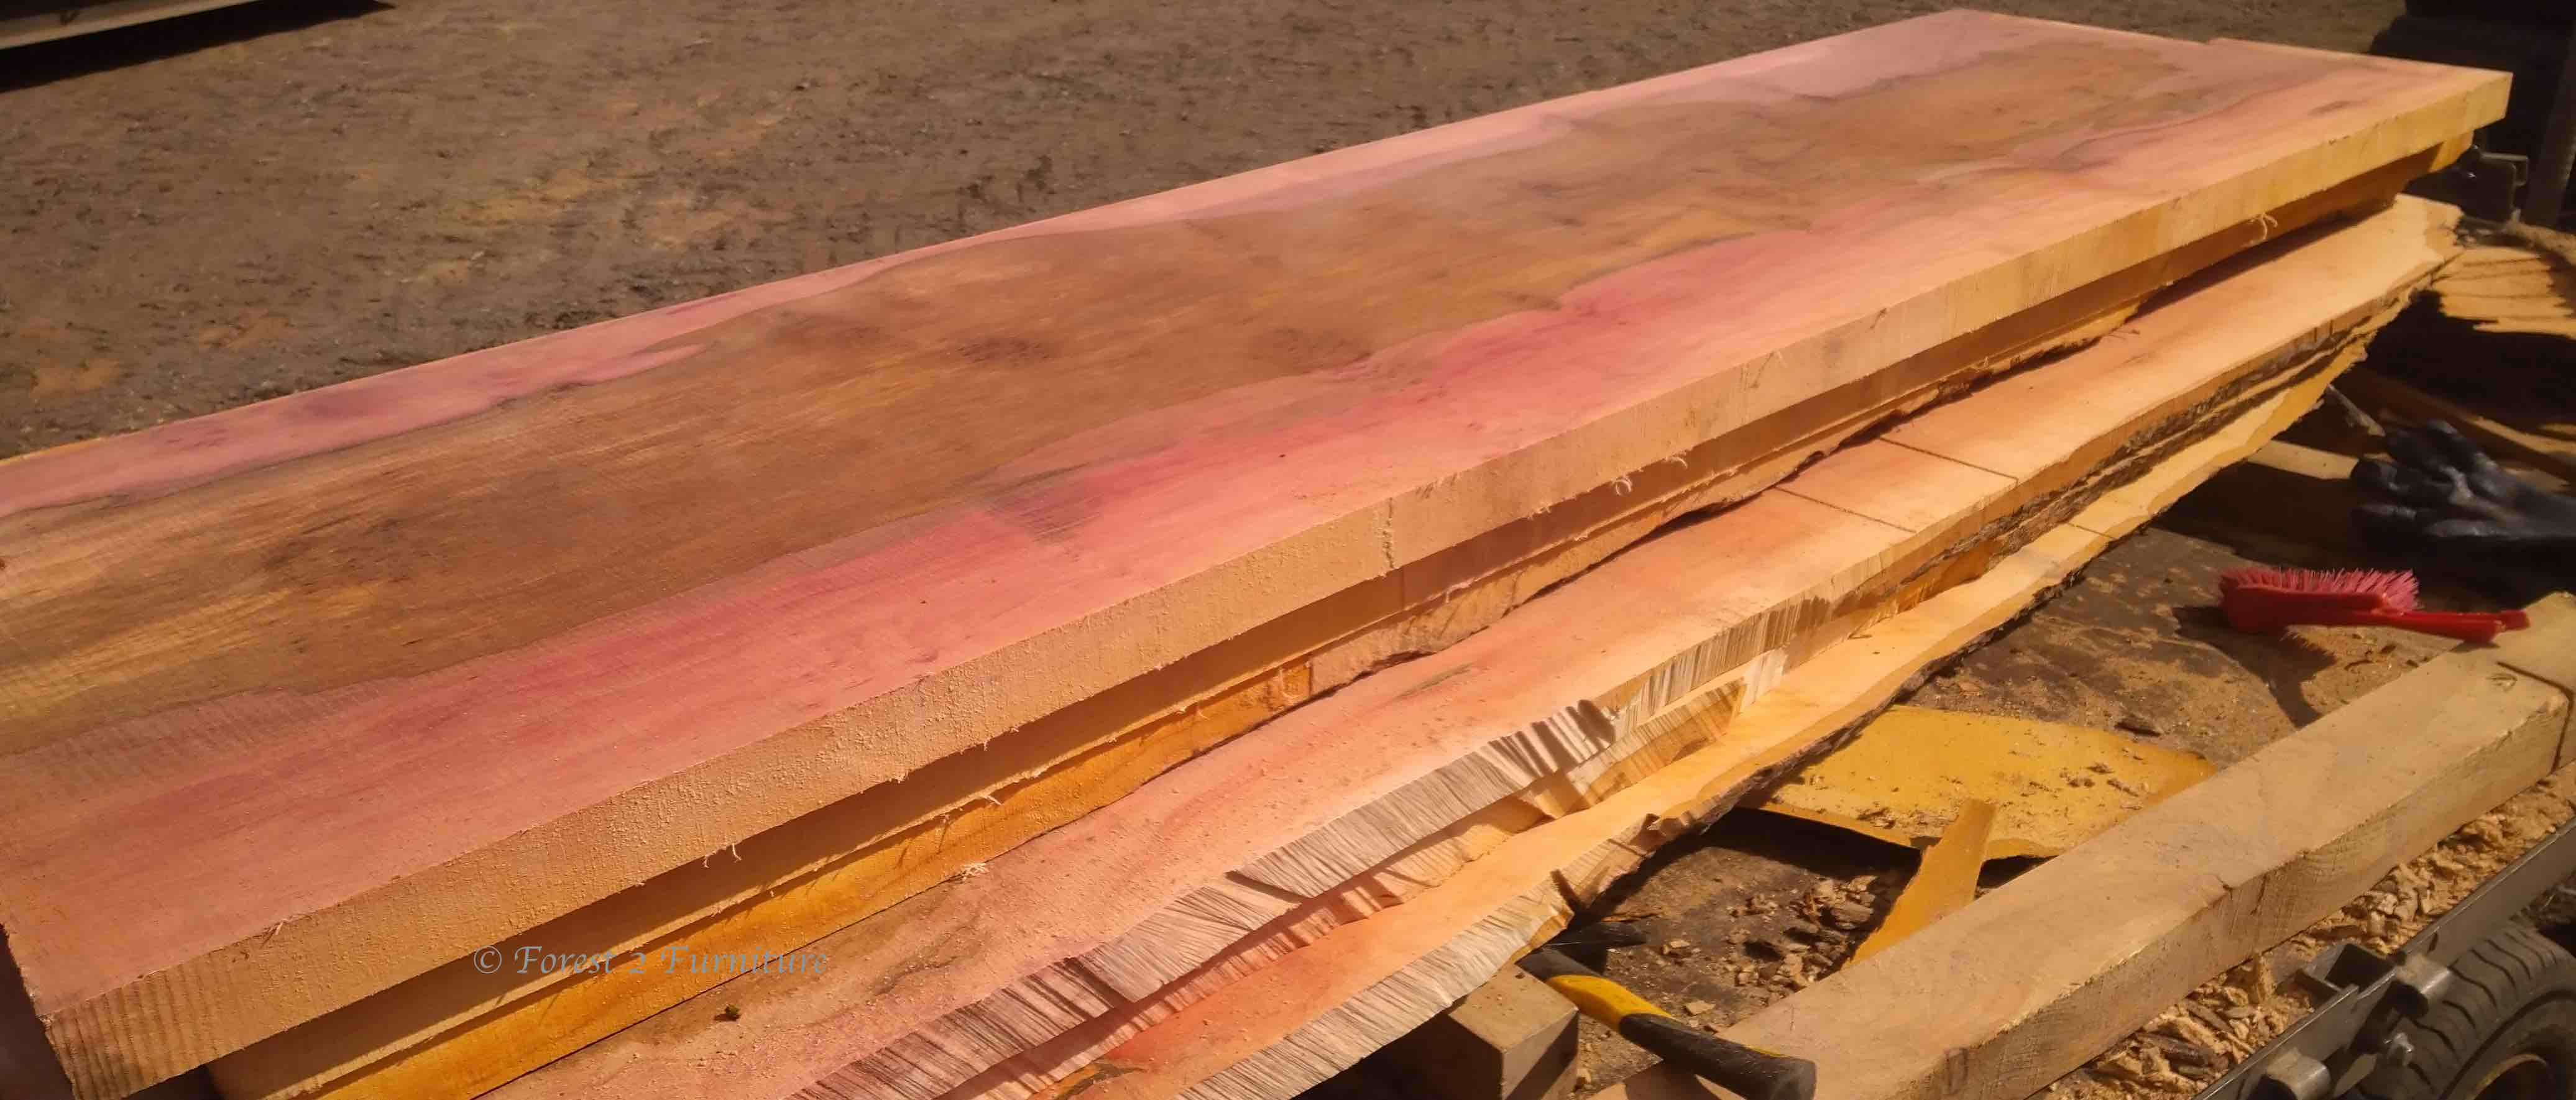 "Once dry these boards, which measure 2"" x 24"" x 8' will be perfect for table or work-surface tops"